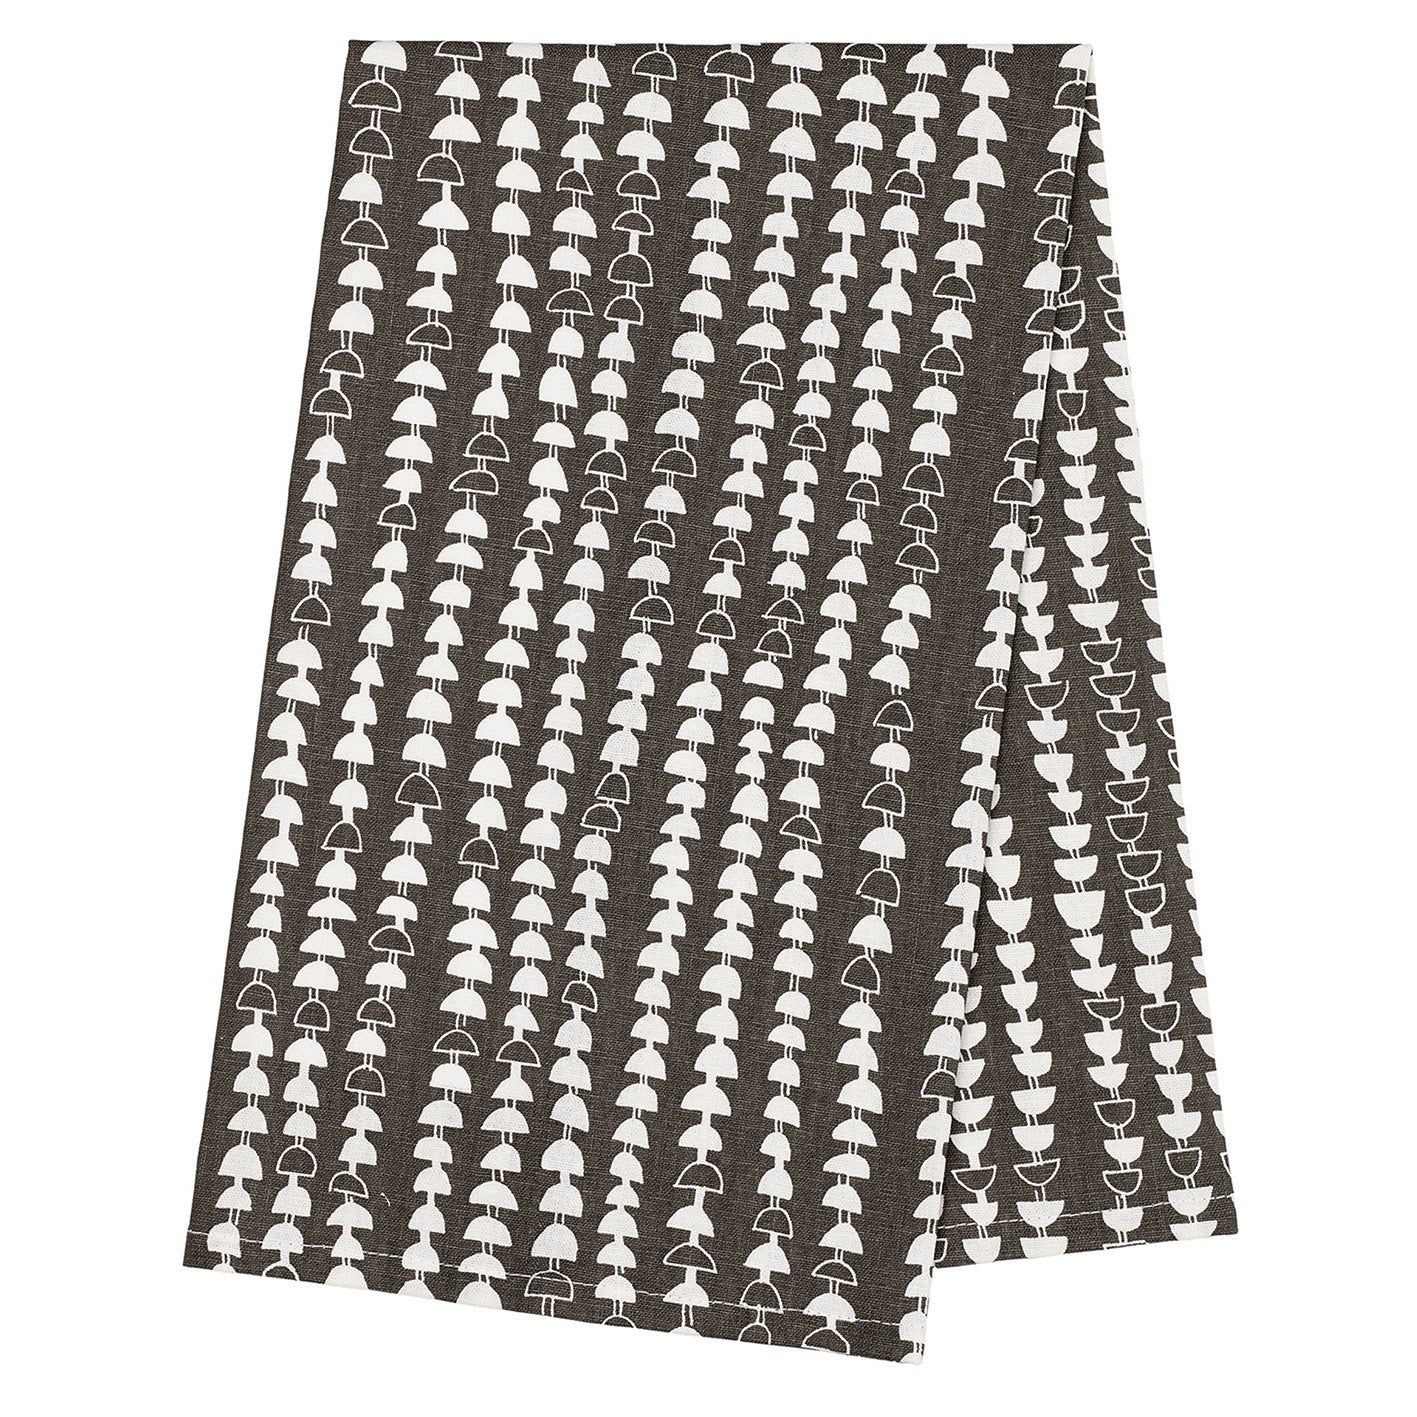 Hopi Tea Towel - Stone Grey